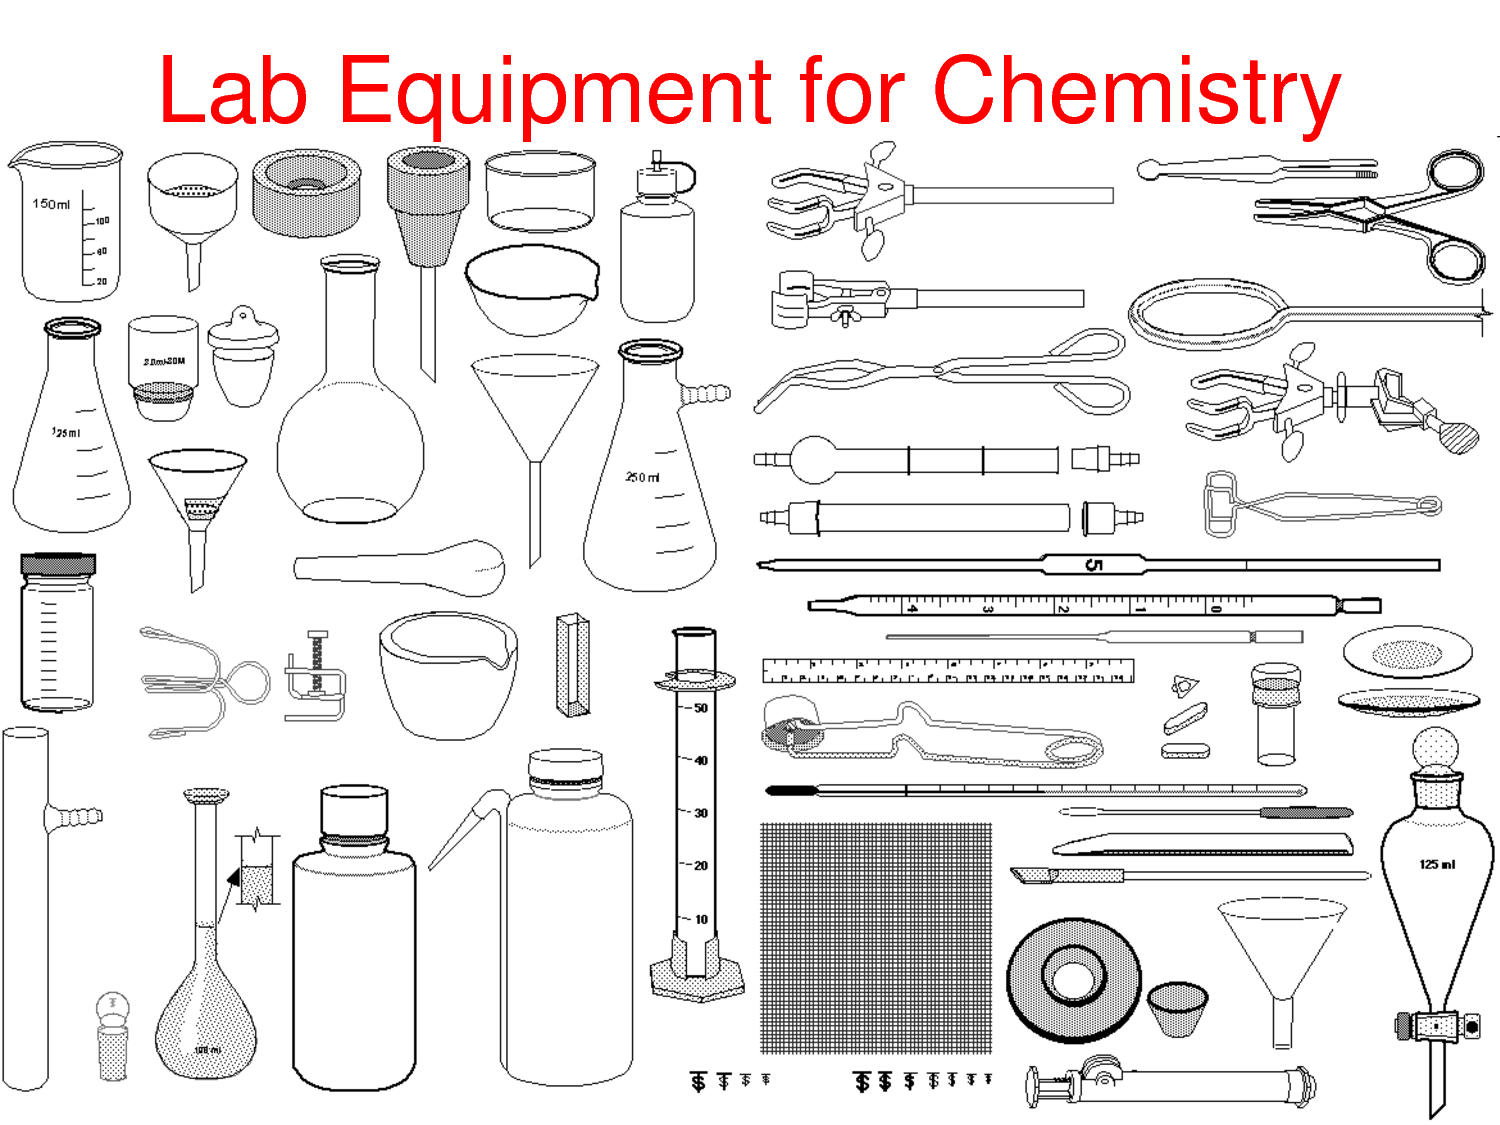 Worksheets Identifying Lab Equipment Worksheet of lab equipment worksheet sharebrowse collection sharebrowse